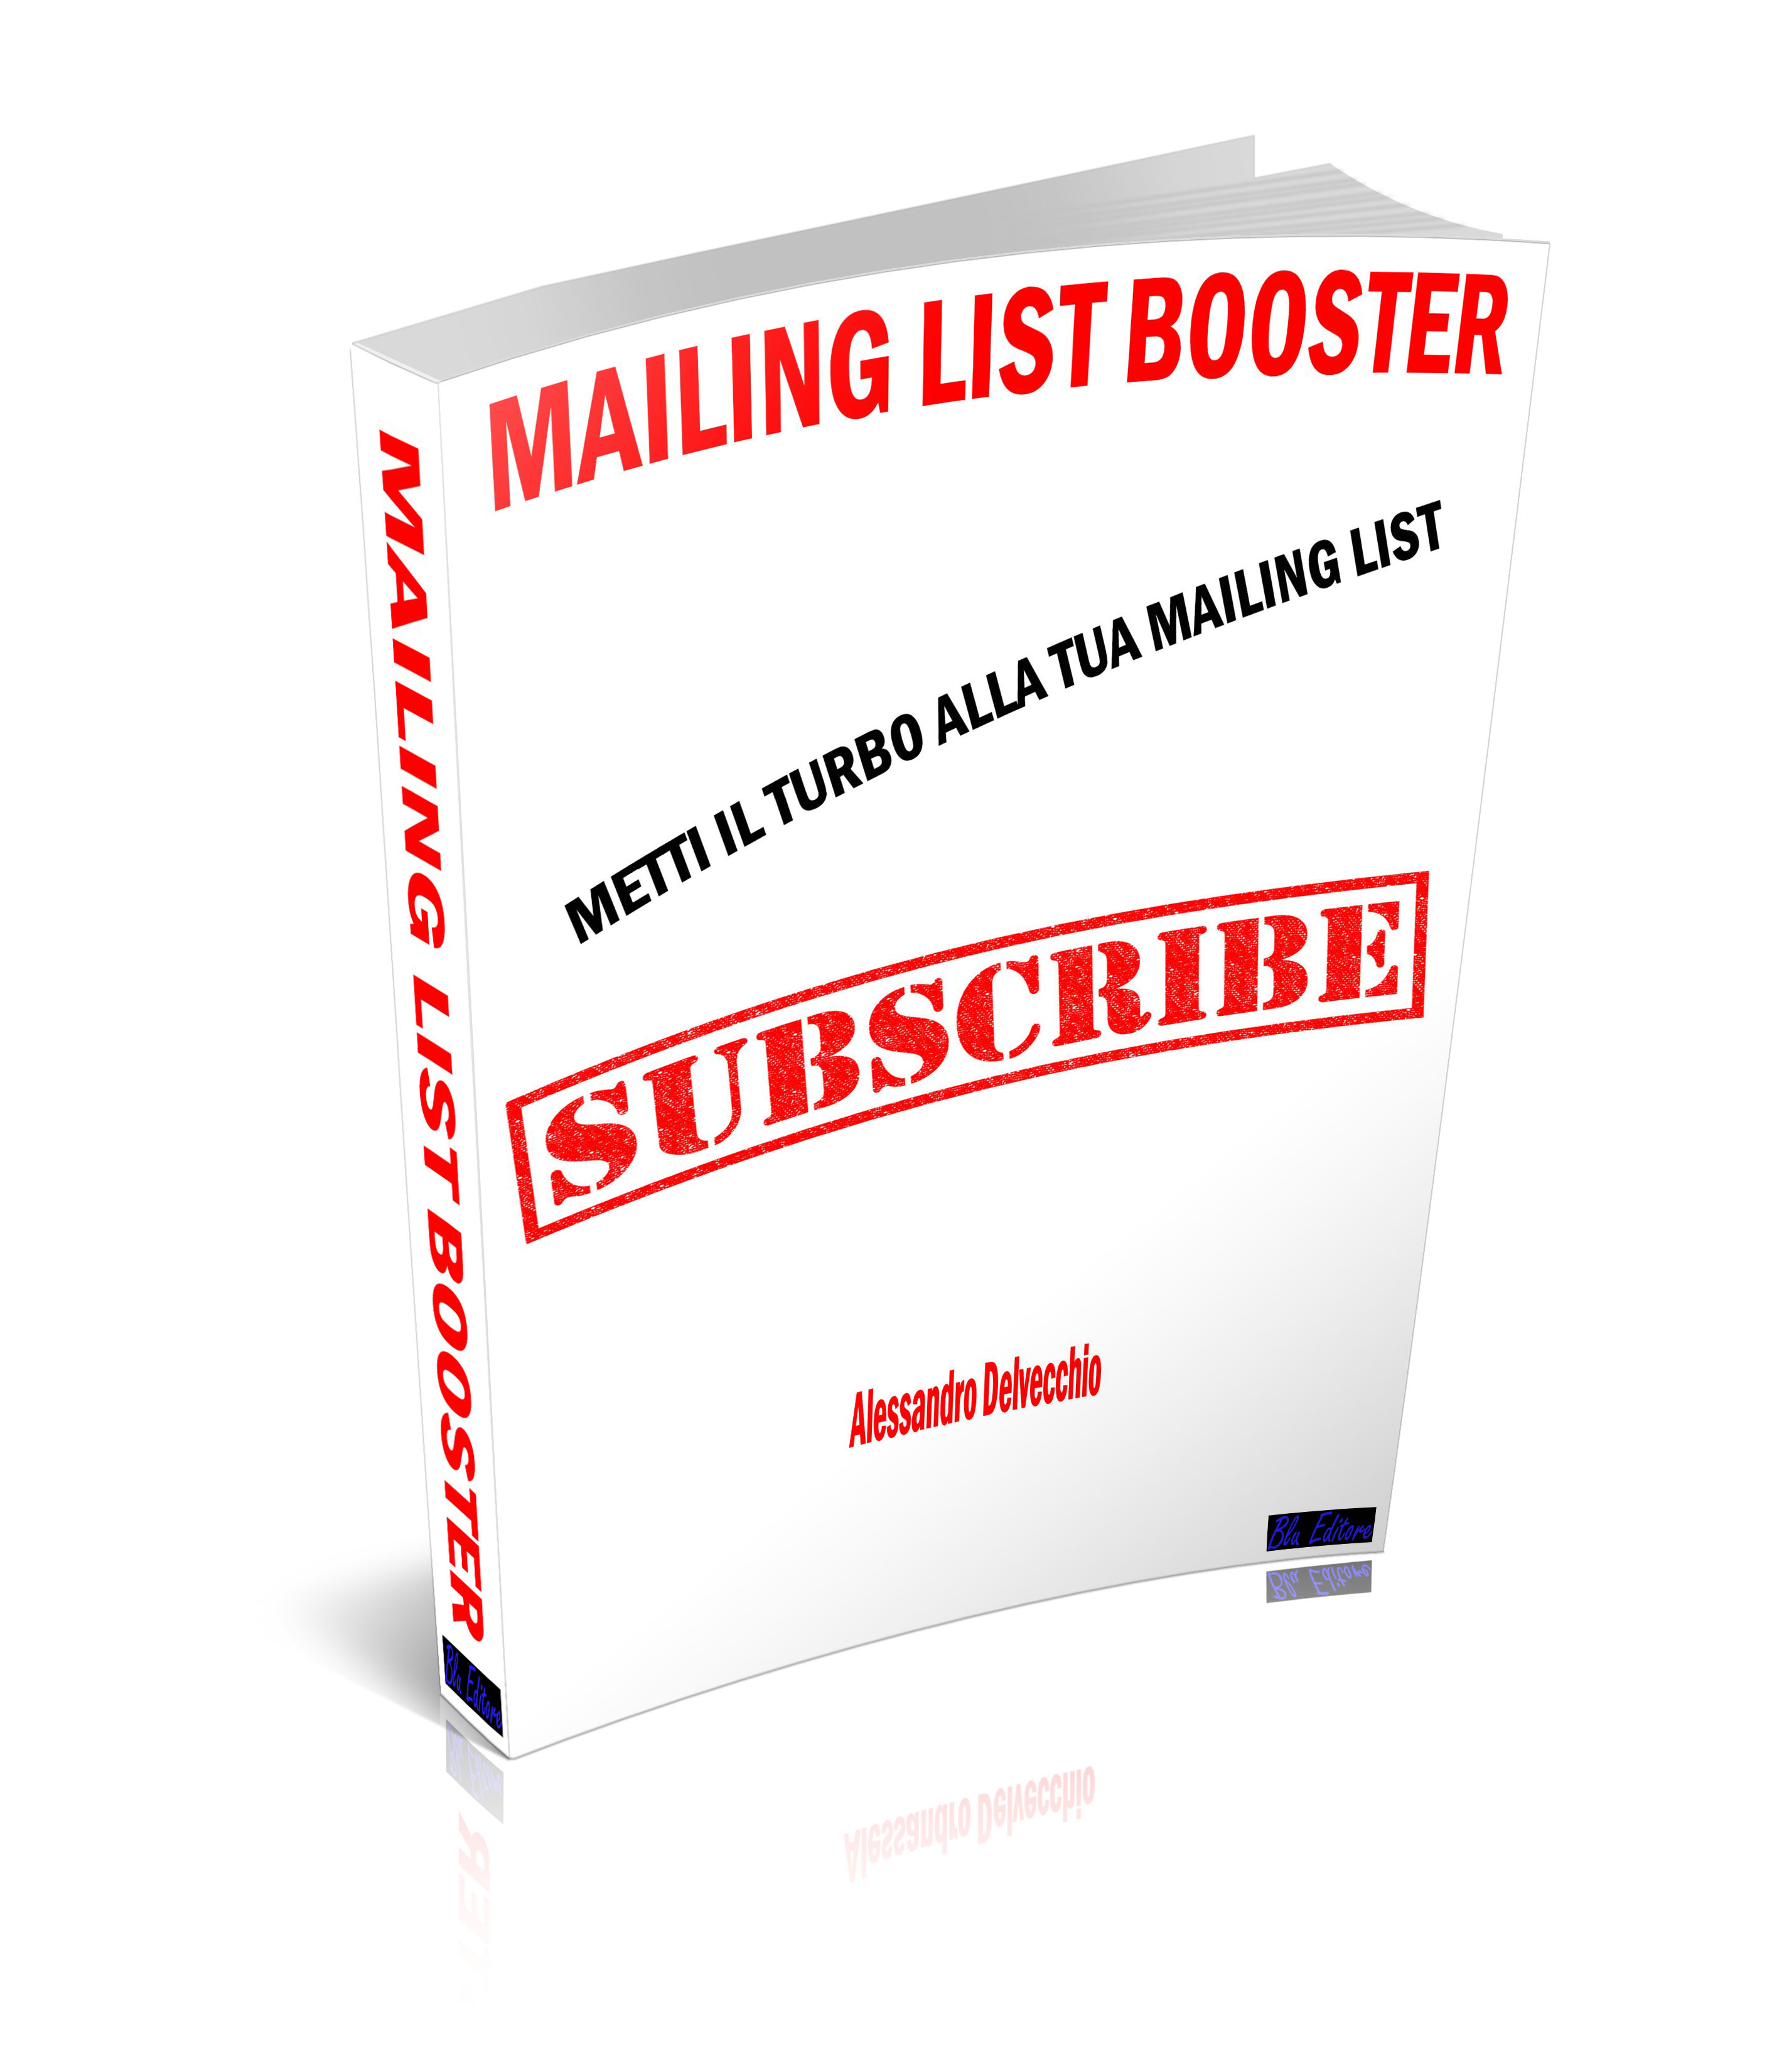 Mailing List Booster